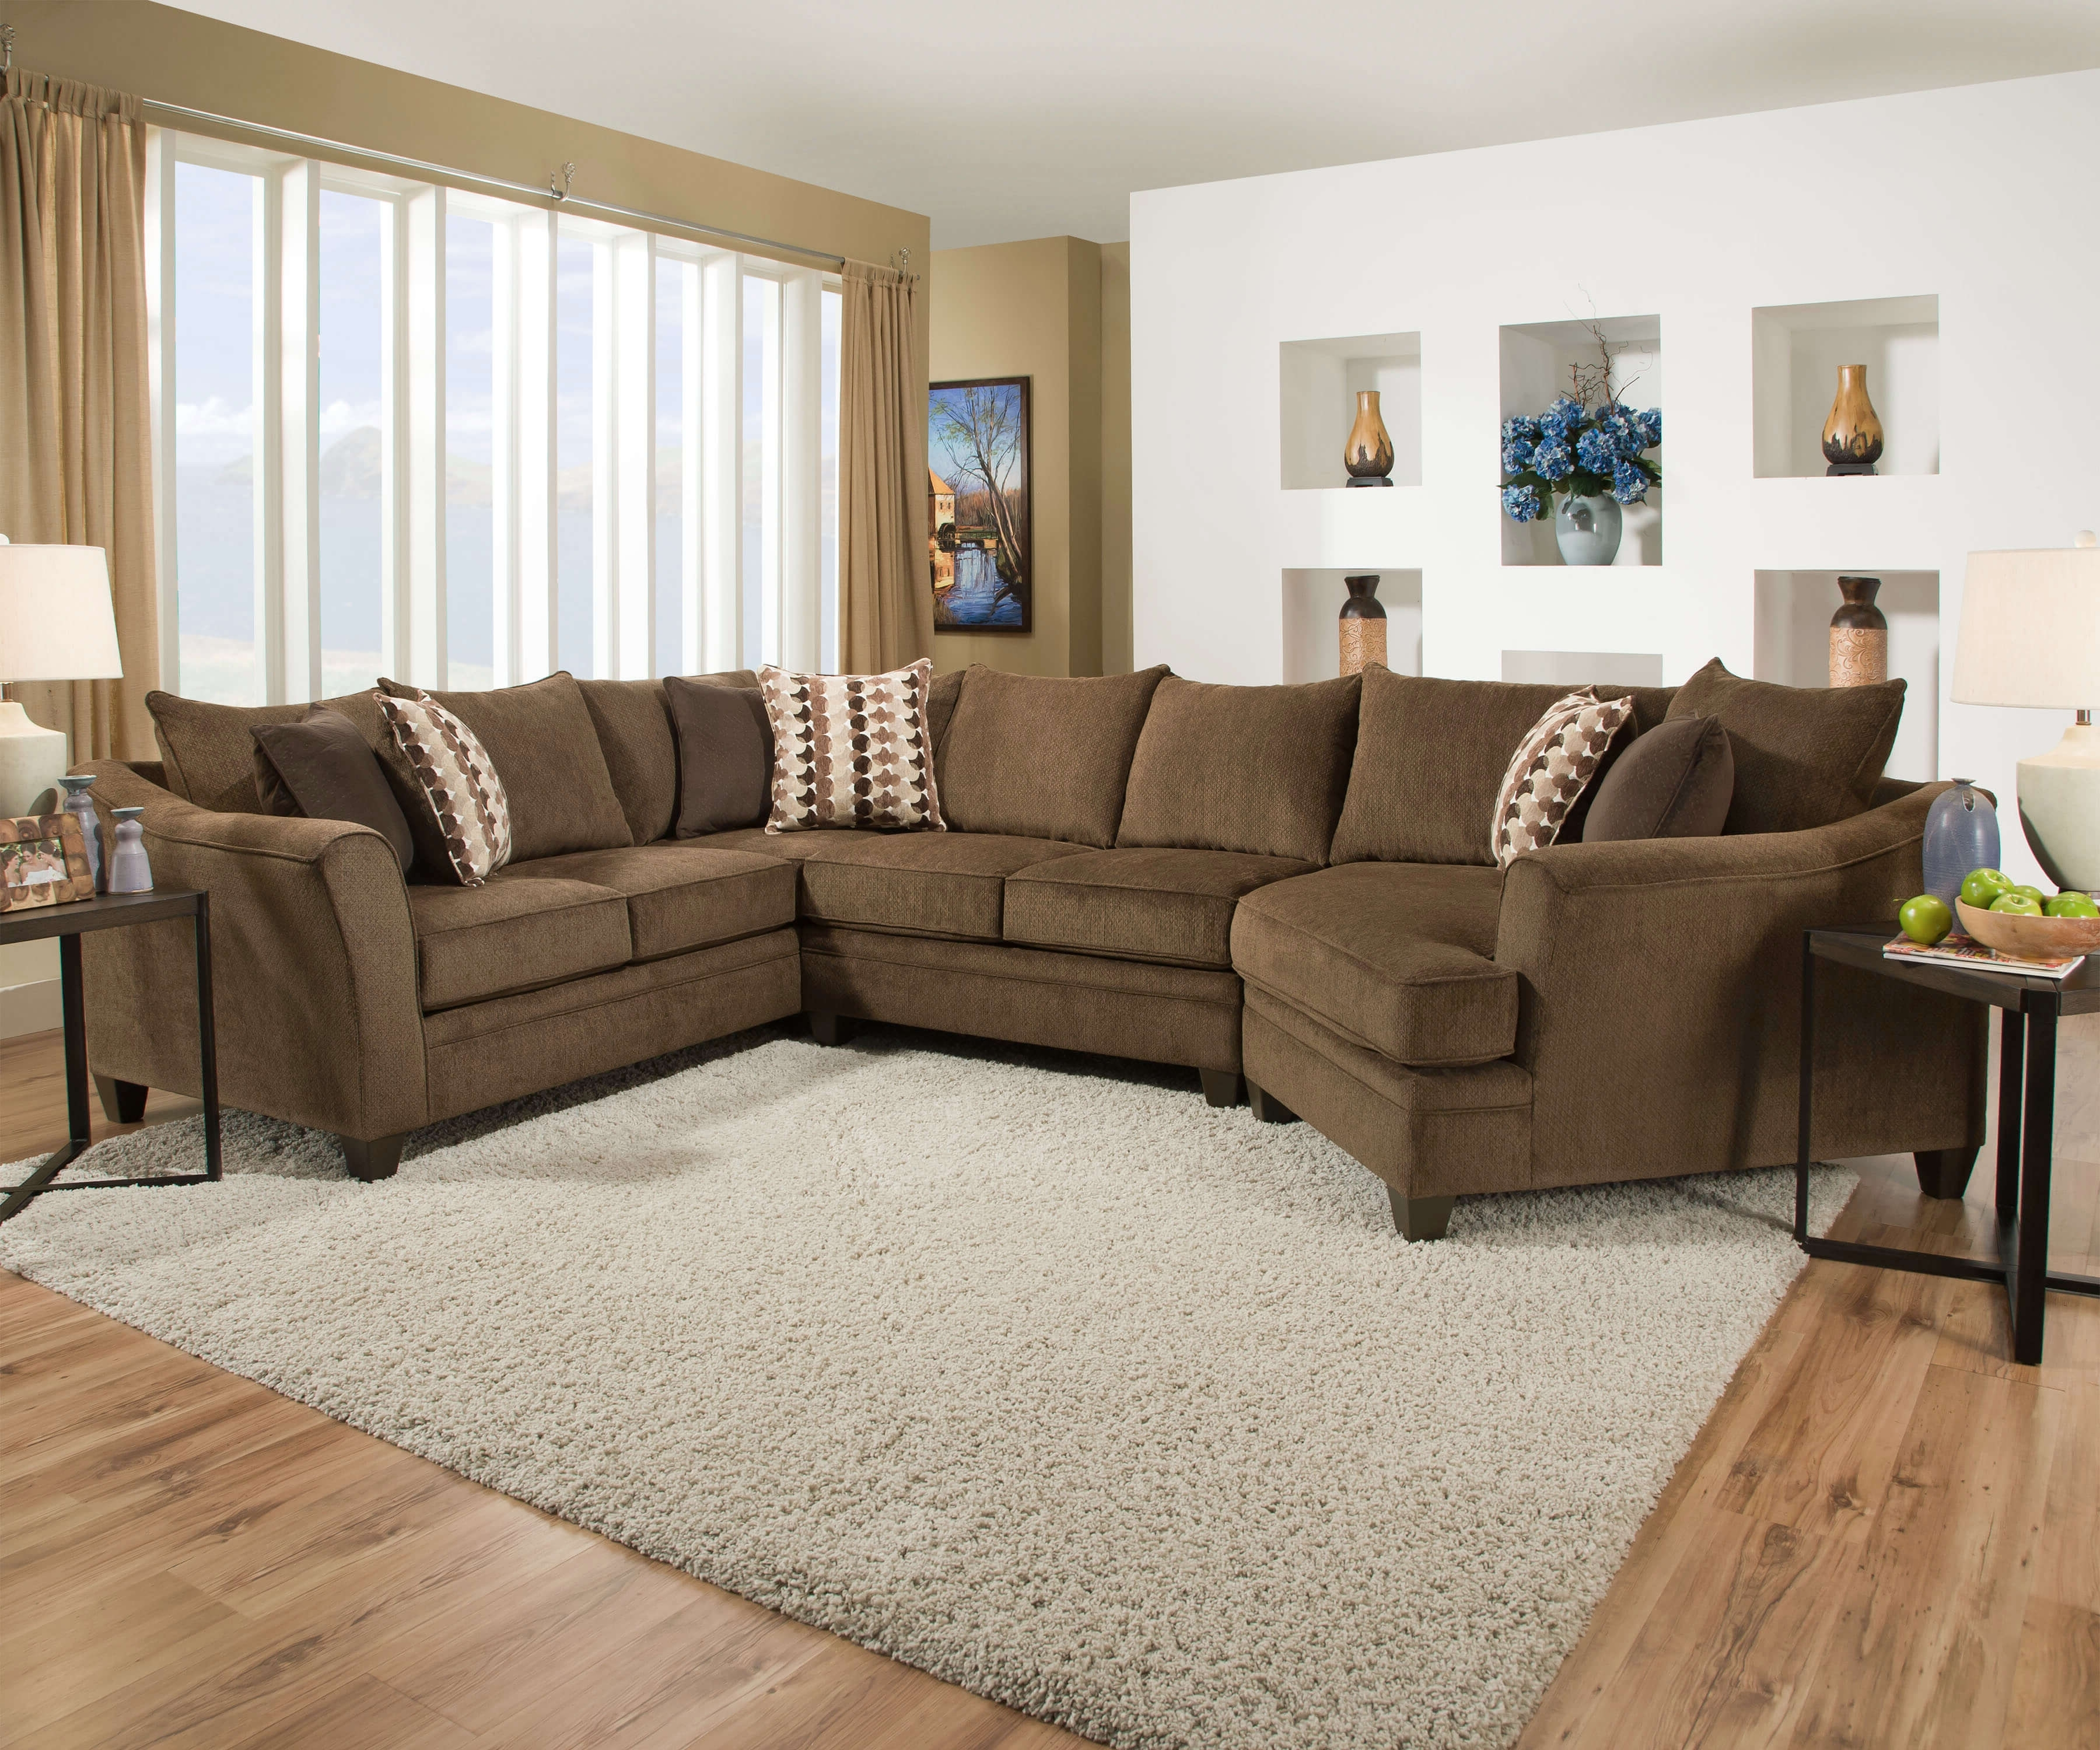 Simmons Sectional Sofas Throughout Favorite Chestnut Sofa And Loveseatsimmons (View 10 of 15)